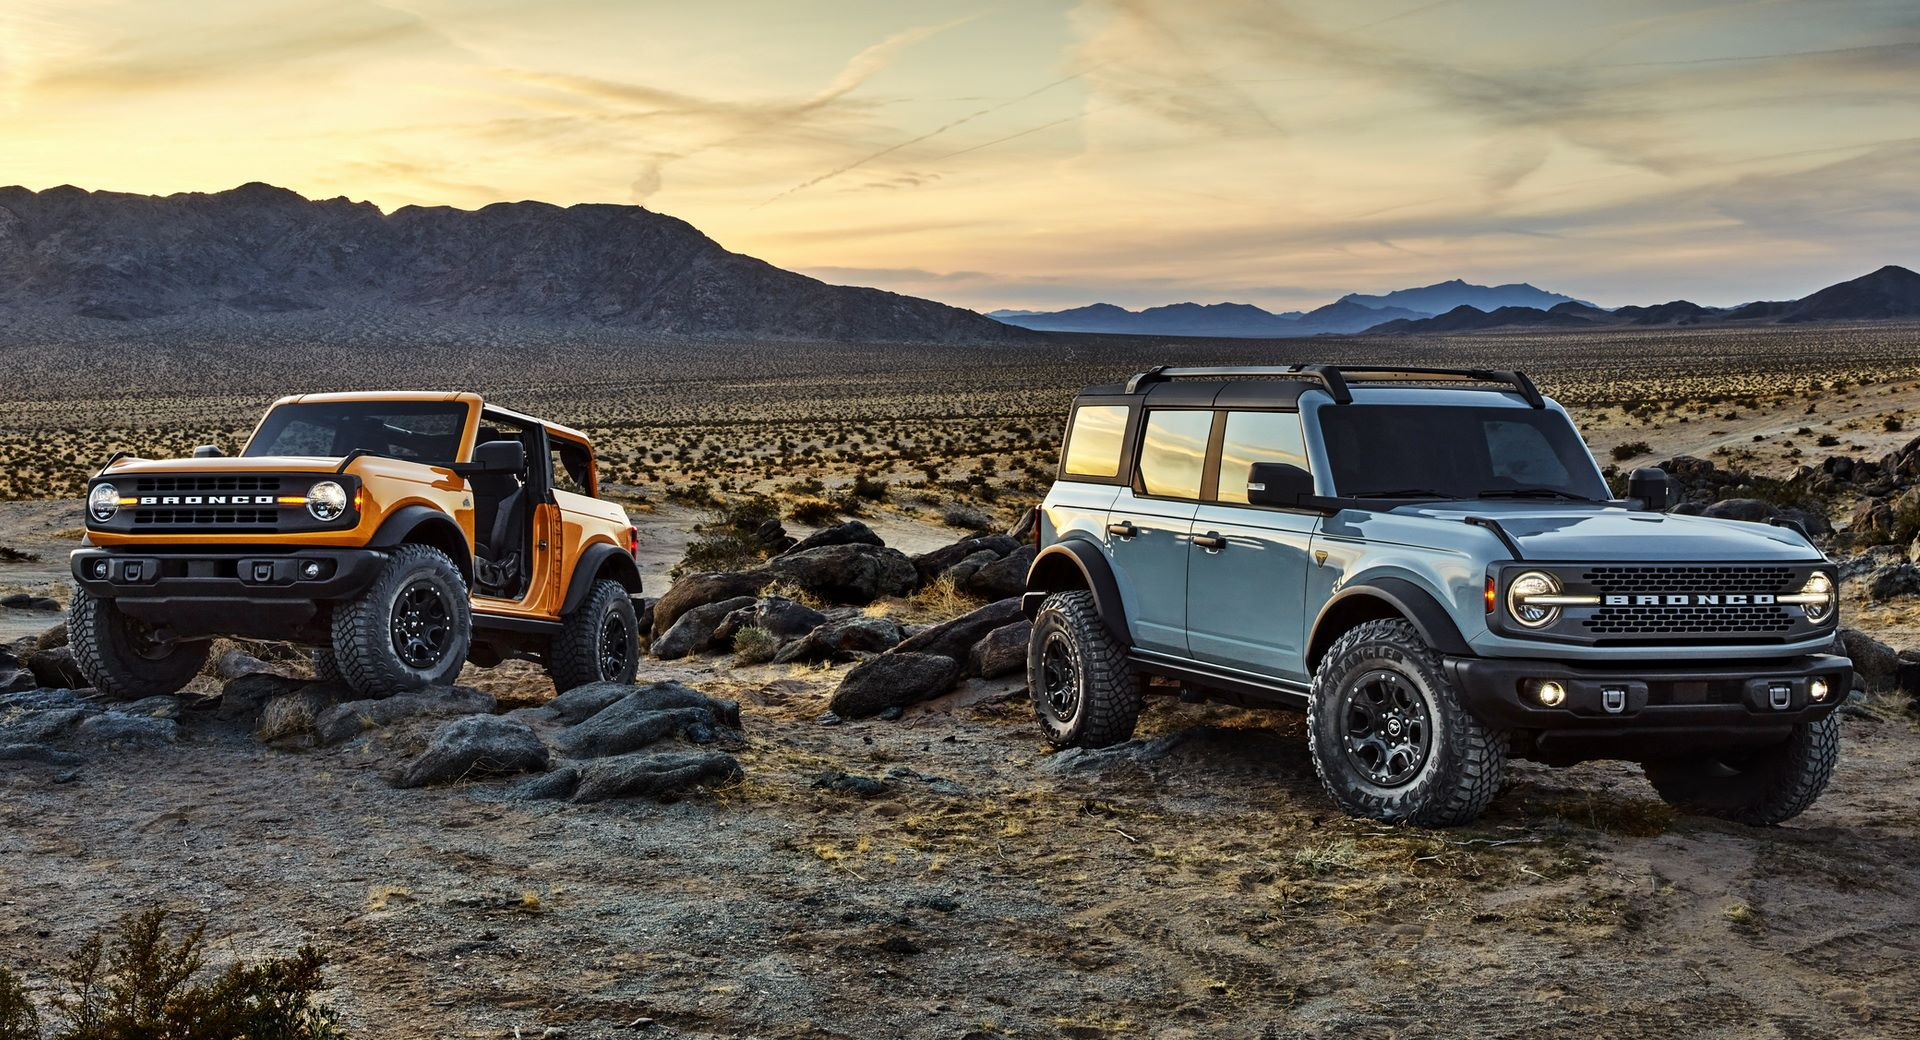 Pre-production versions of the 2021 Bronco, shown here, include Bronco two-door in Cyber Orange Metallic Tri-Coat and Bronco four-door in Cactus Gray.